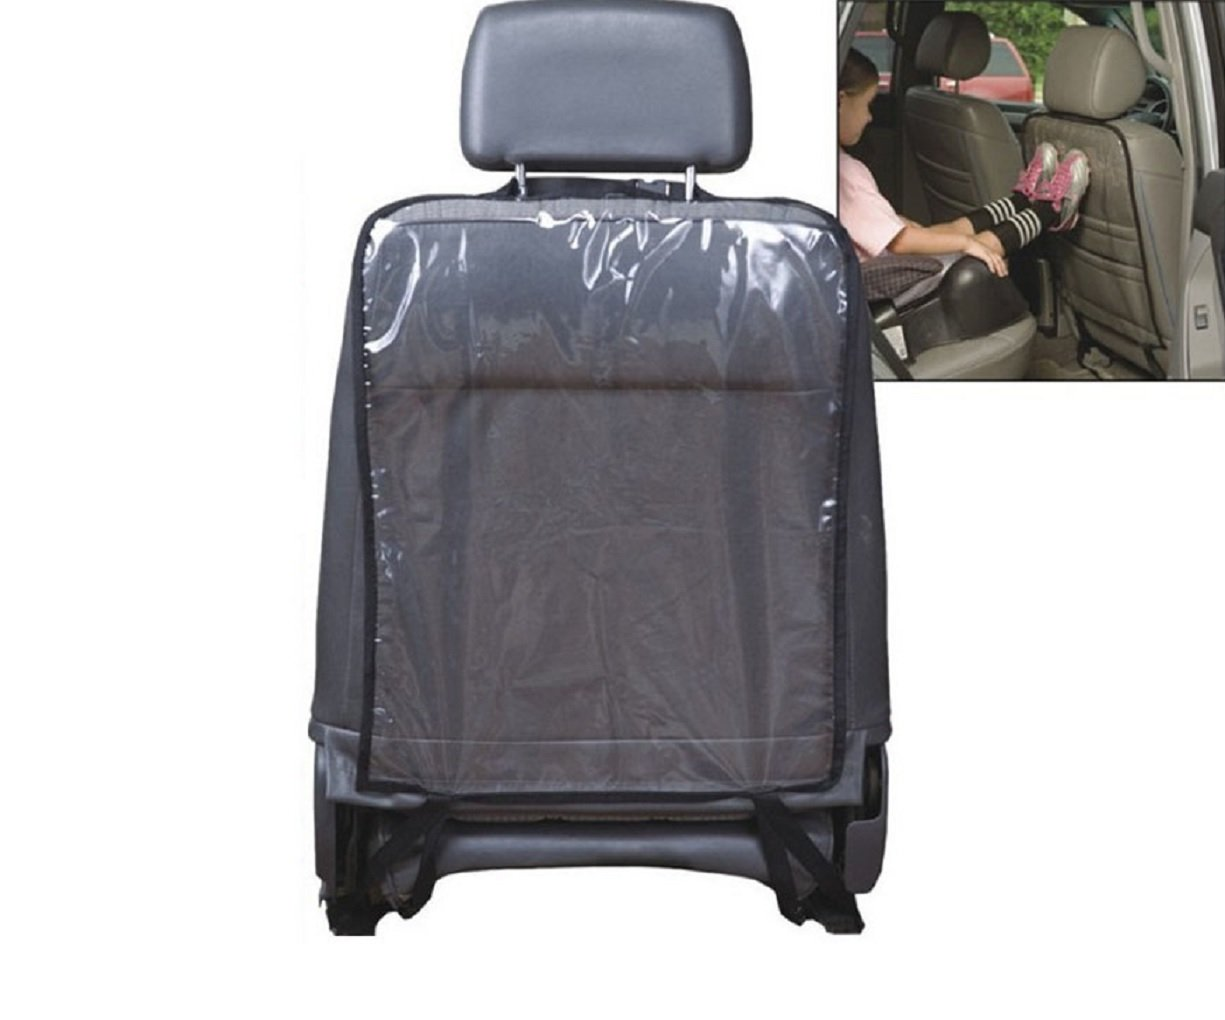 Car Seat Back Cover, Protector, Kick Mat for Kids, Universal Fit, Clear Transparent (save 15% if you buy 2 or more) MOKRIL